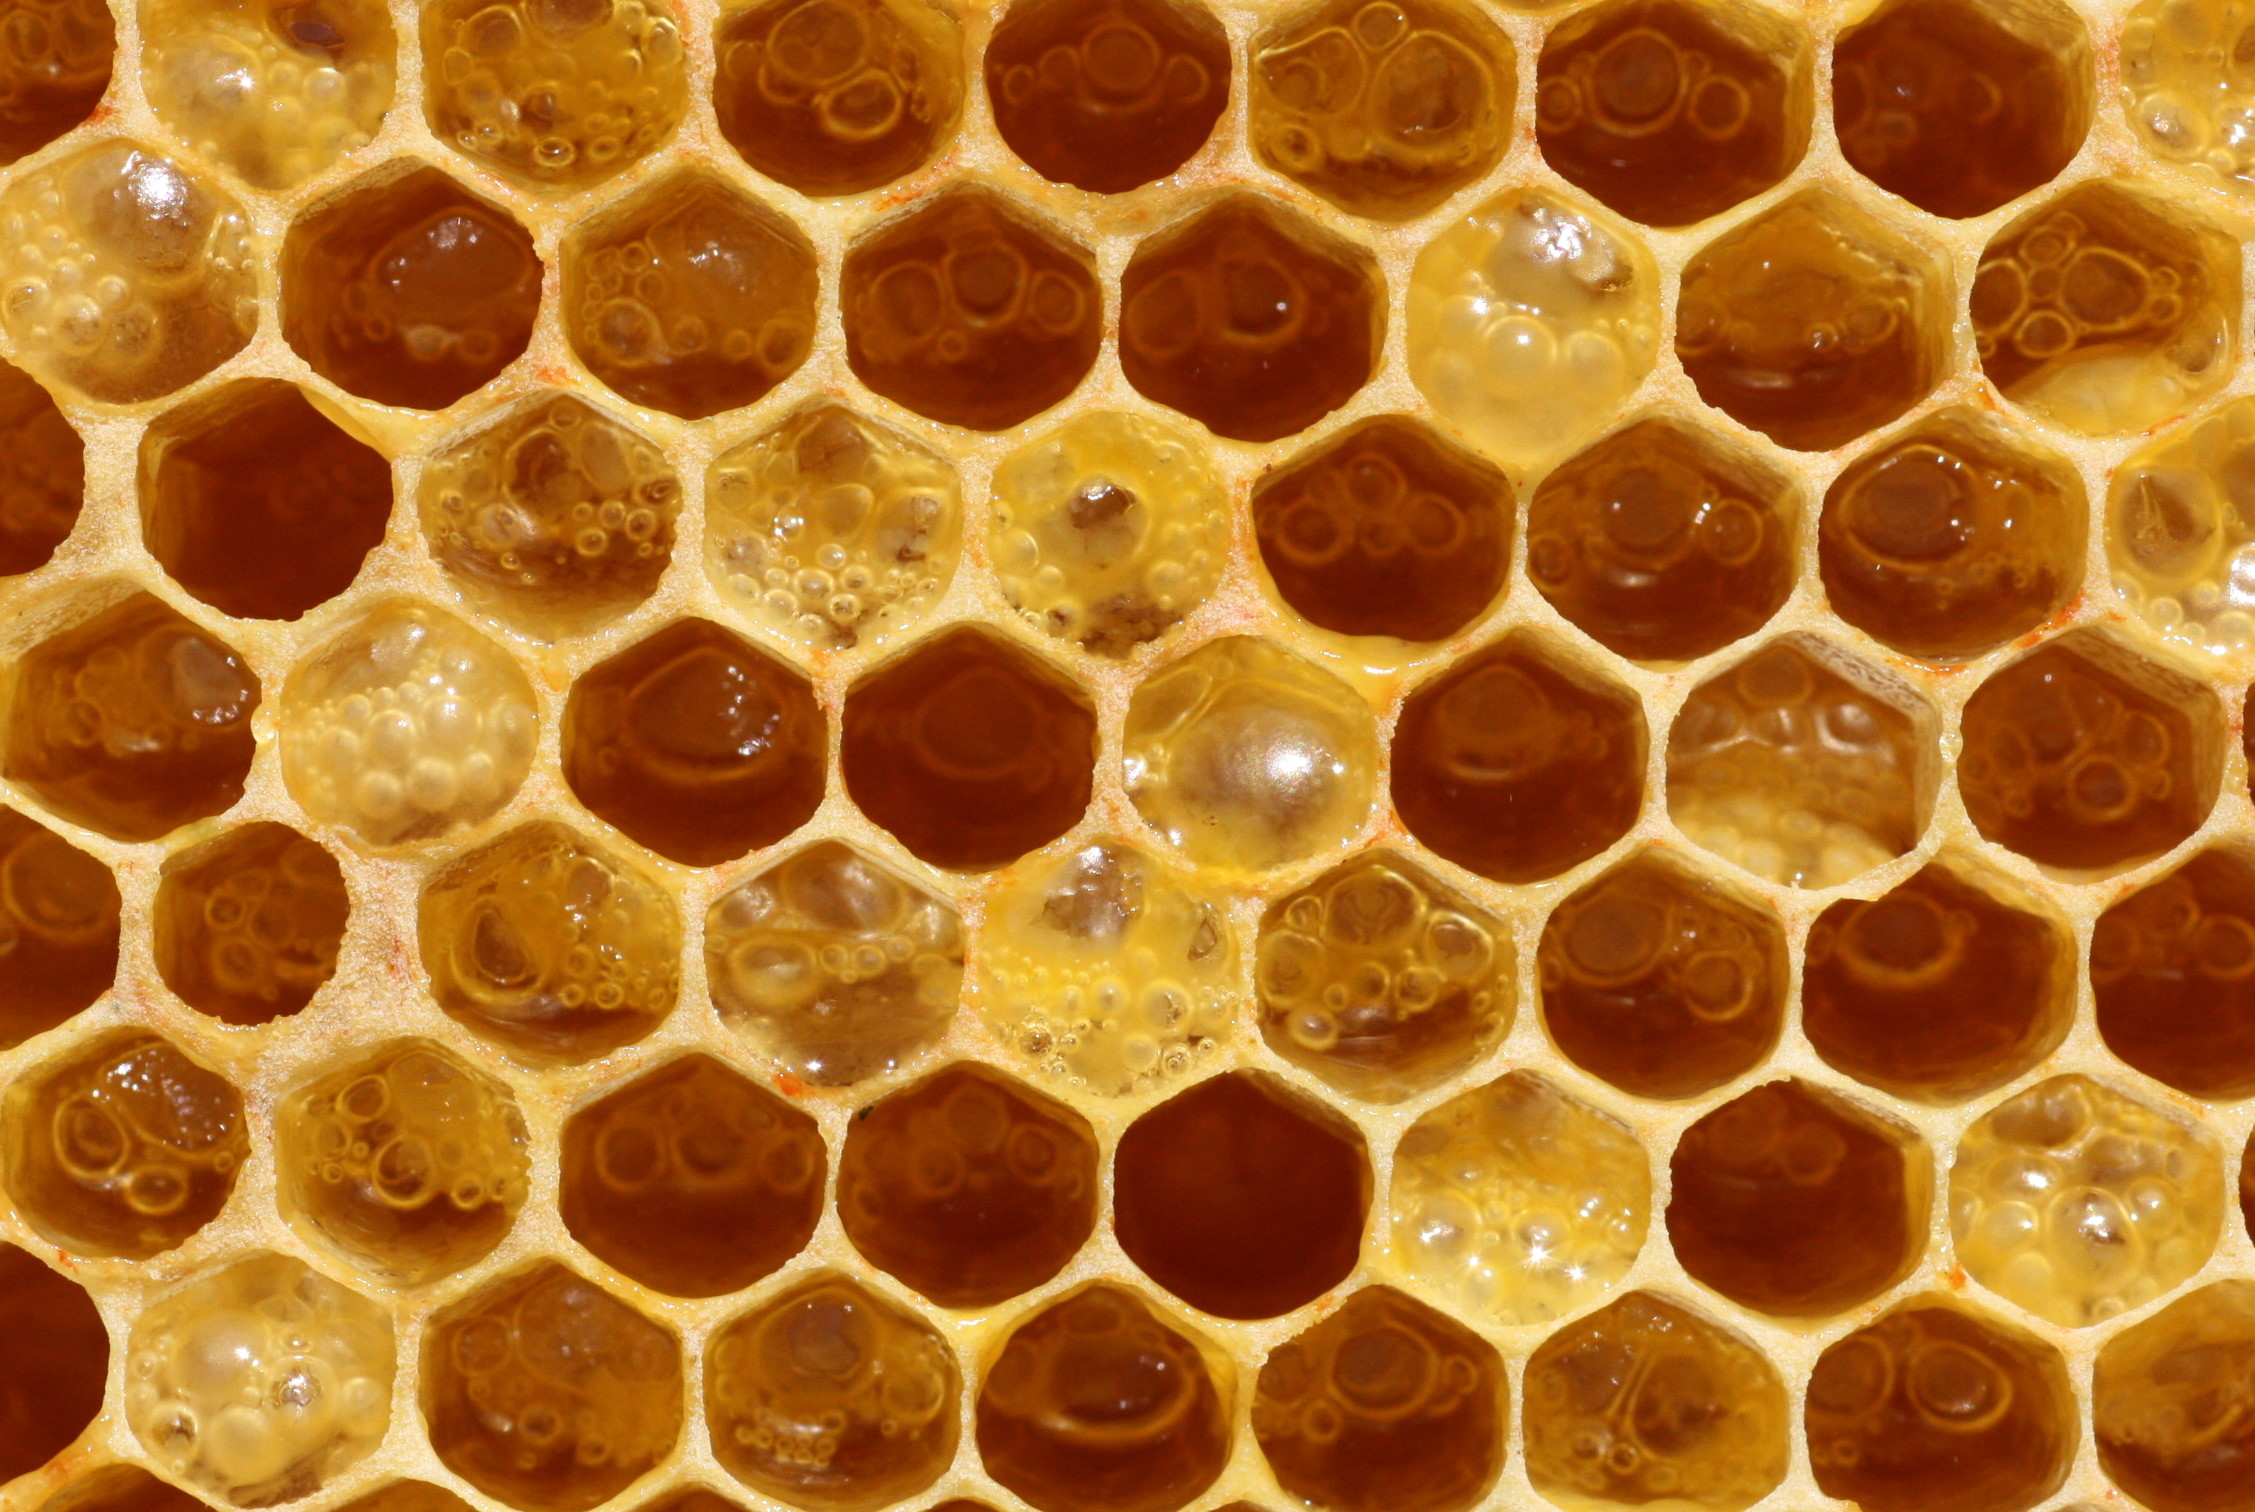 How to use the honey for the skin care and beauty care at home